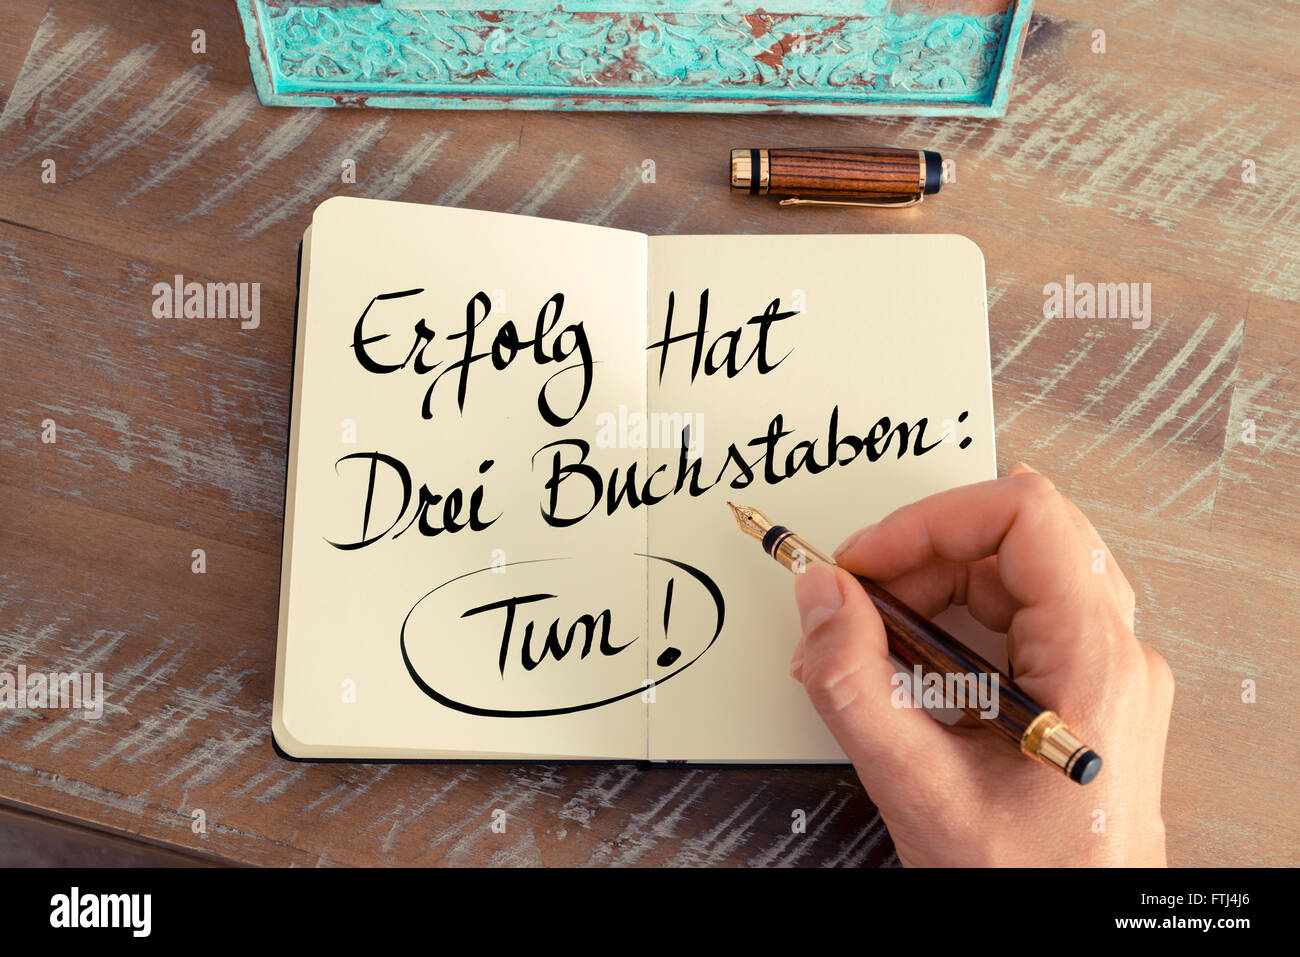 handwritten text in german erfolg hat drei buchstaben tun stock photo royalty free image. Black Bedroom Furniture Sets. Home Design Ideas